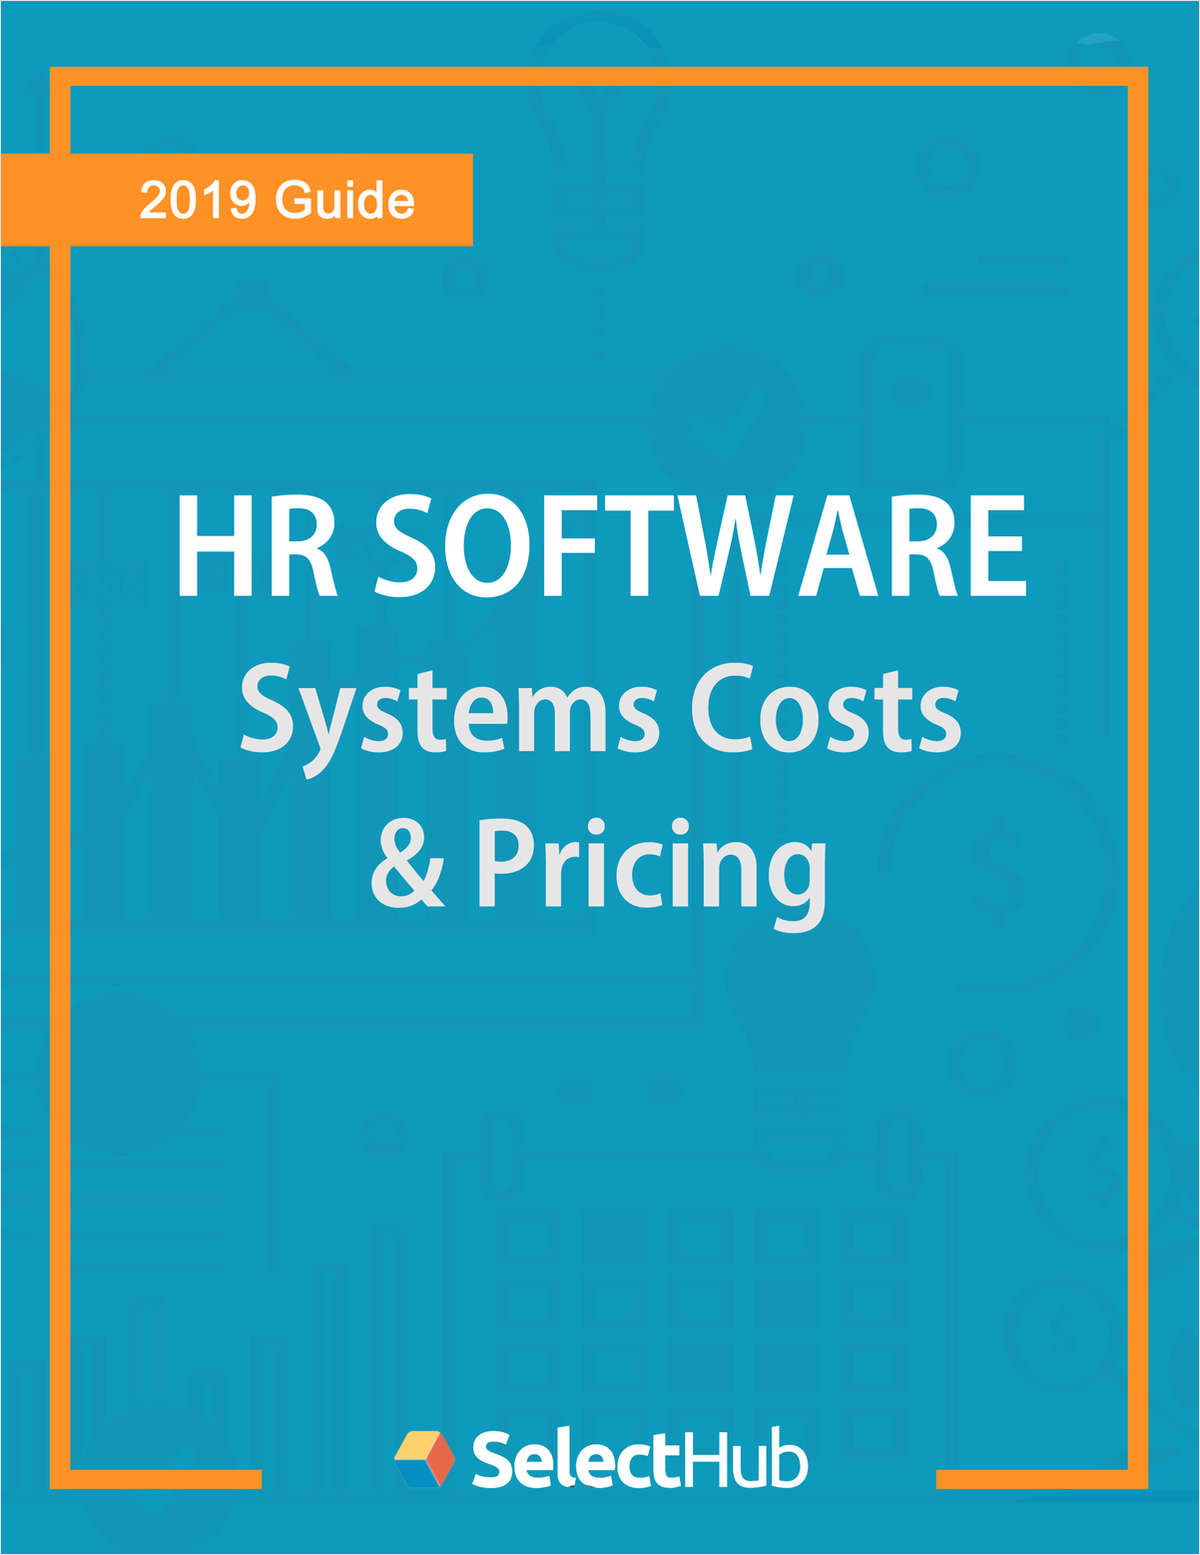 Compare Top HR Software Costs & Pricing